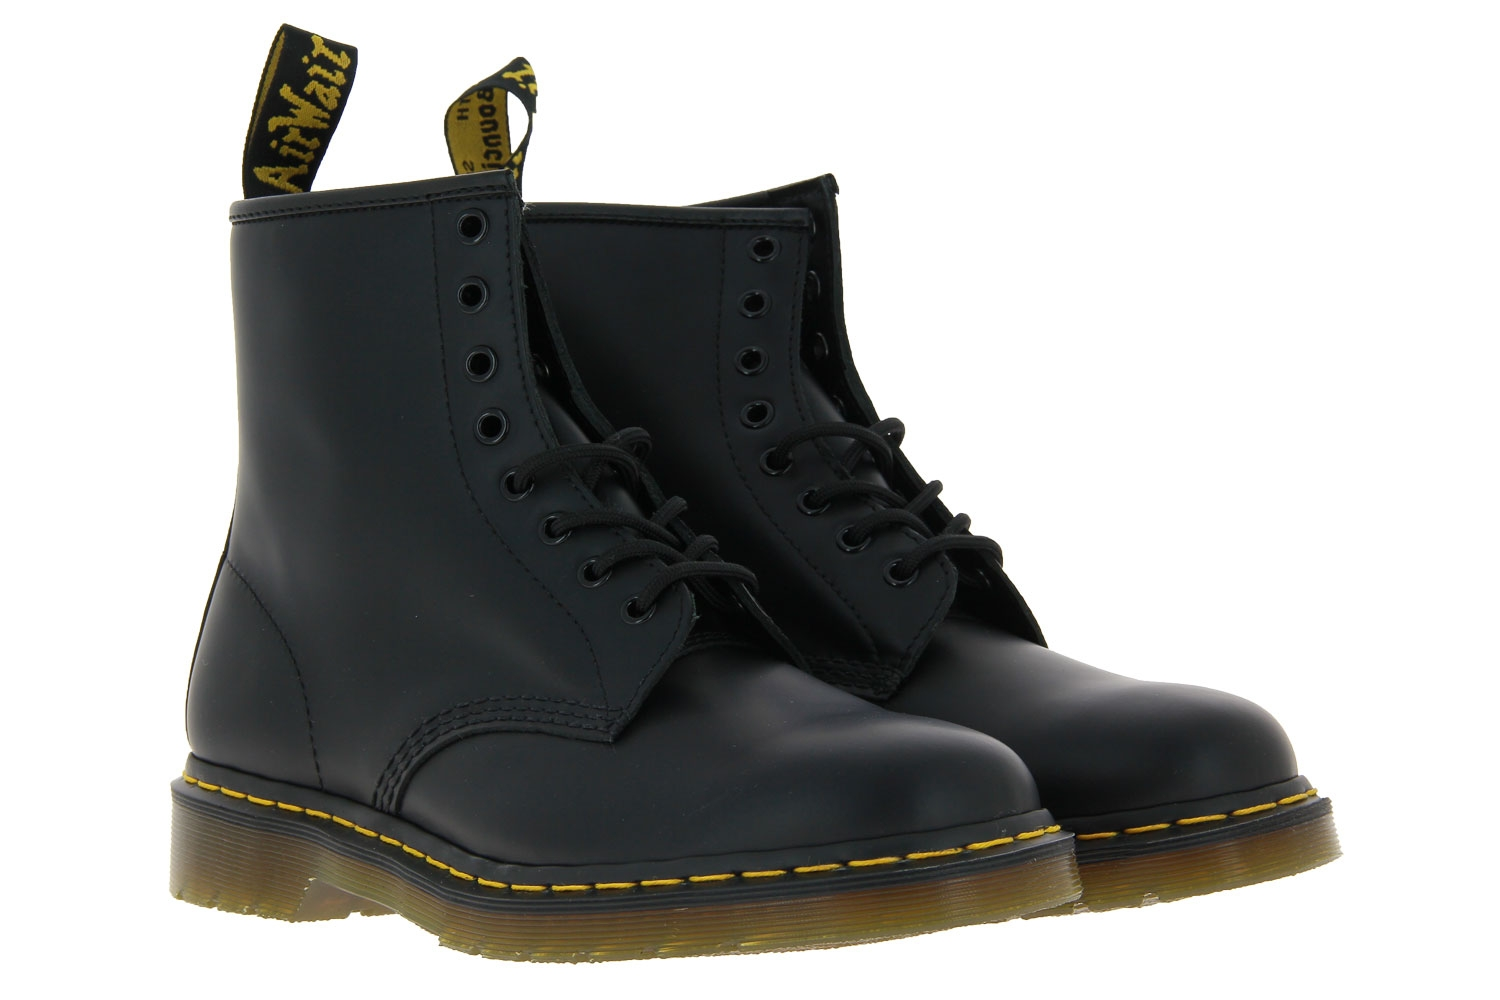 Dr. Martens boots 1460 BLACK SMOOTH